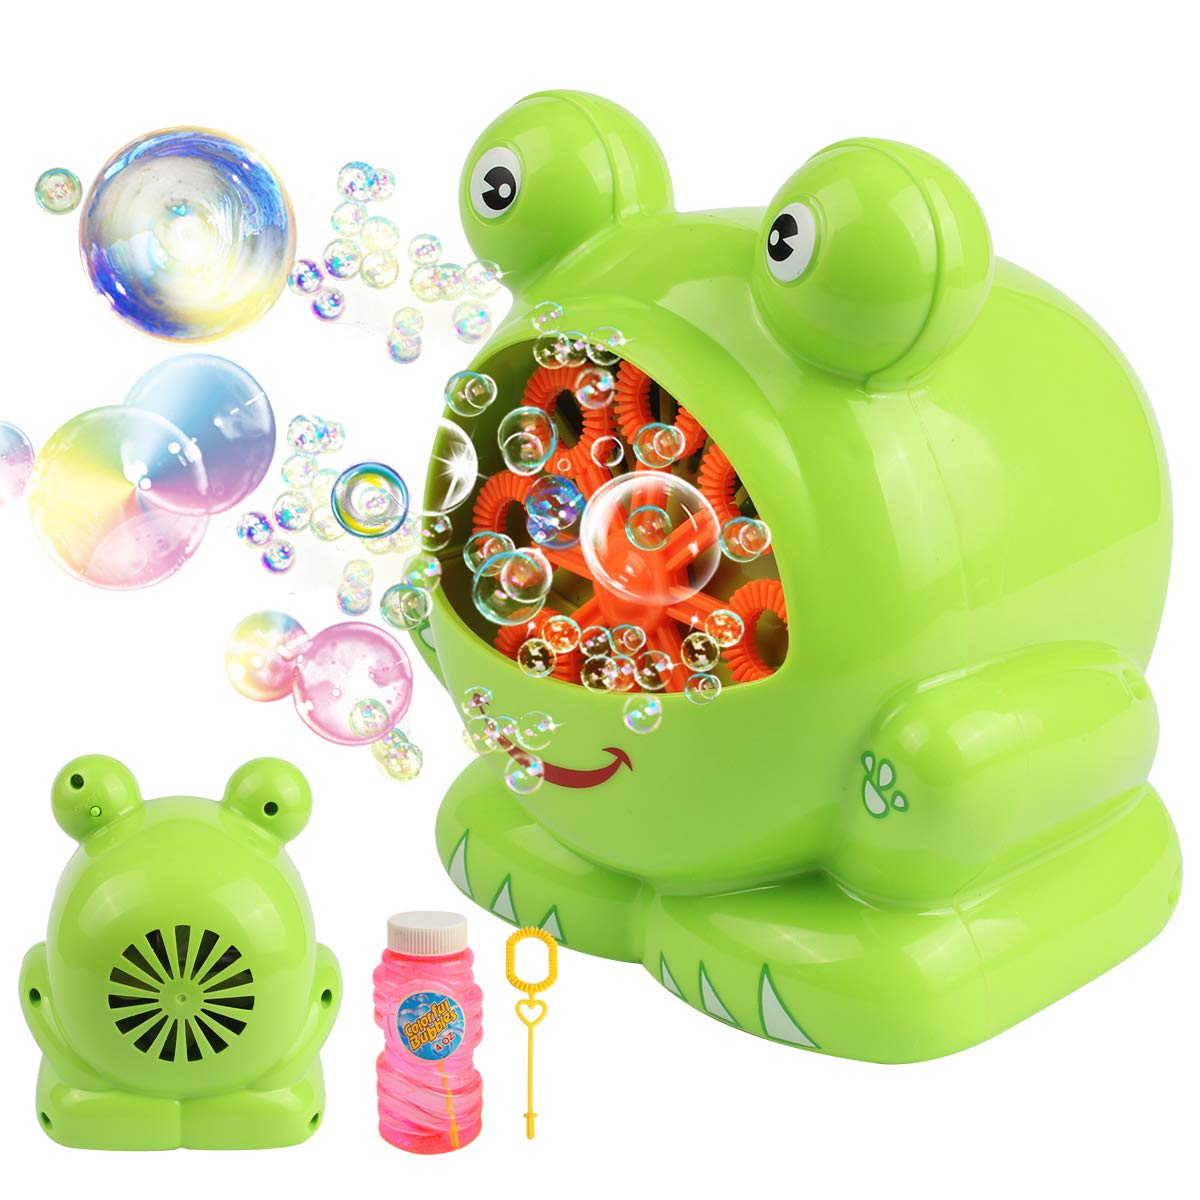 Automatic Frog Bubble Blower Machine Make Bubbles for Kids Birthday Party, Wedding, Indoor and Outdoor Games by Kidcheer (Image #1)